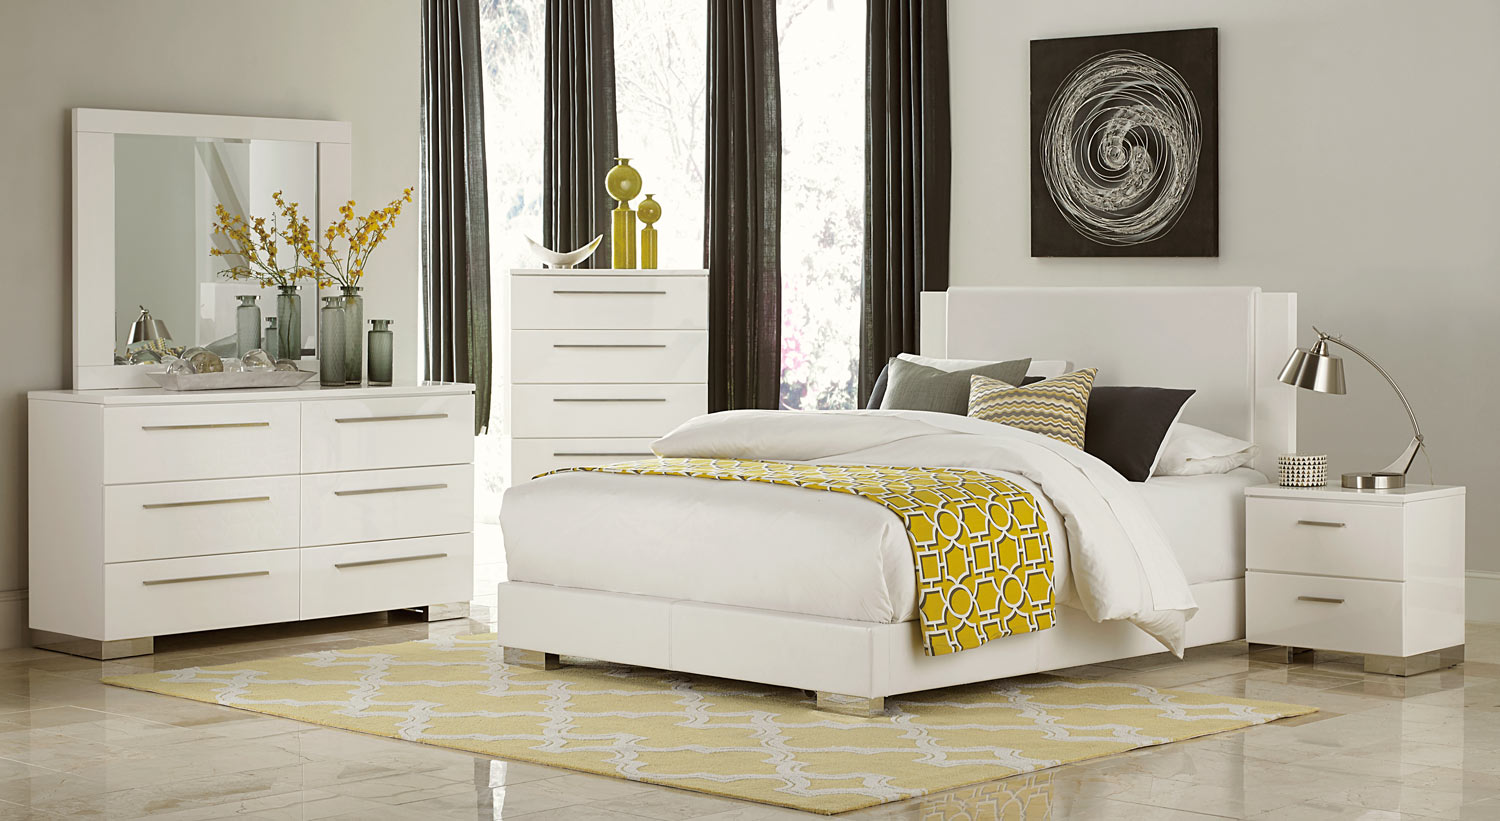 Homelegance Linnea Bedroom Set - High-Gloss White